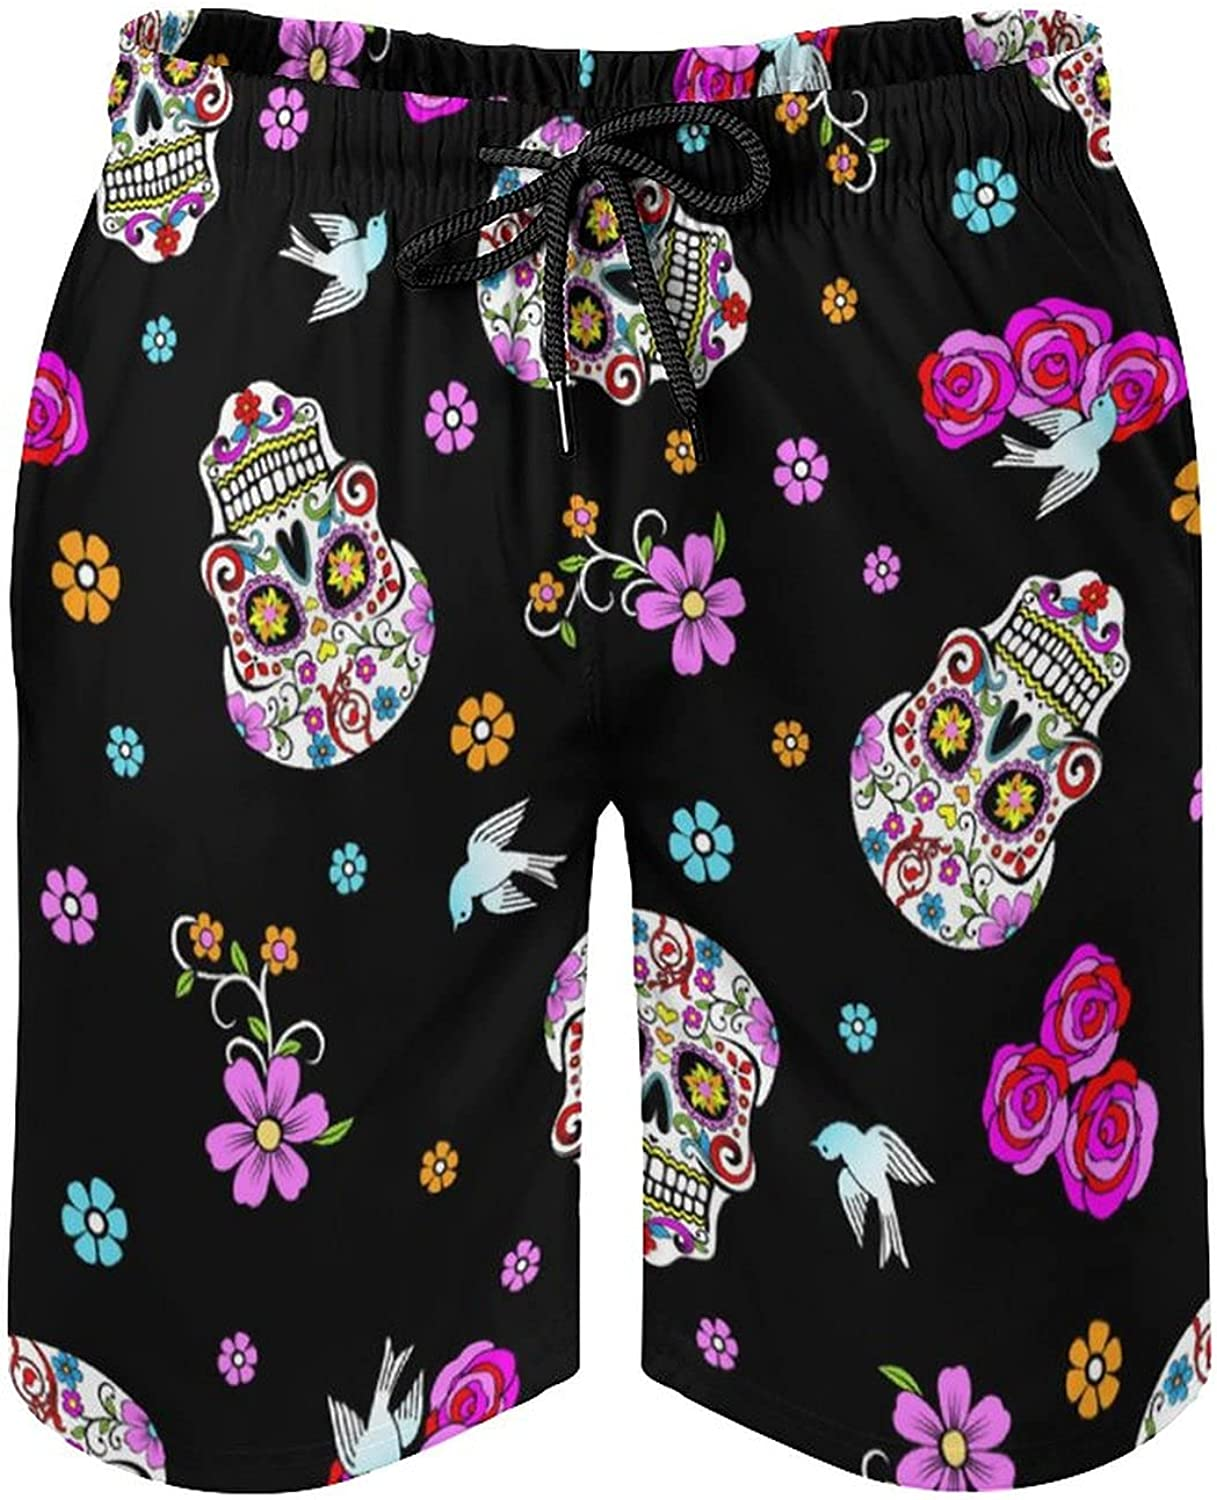 NiYoung Men's Quick Dry Swim Trunks Casual Board Shorts Summer Holiday Beach Short